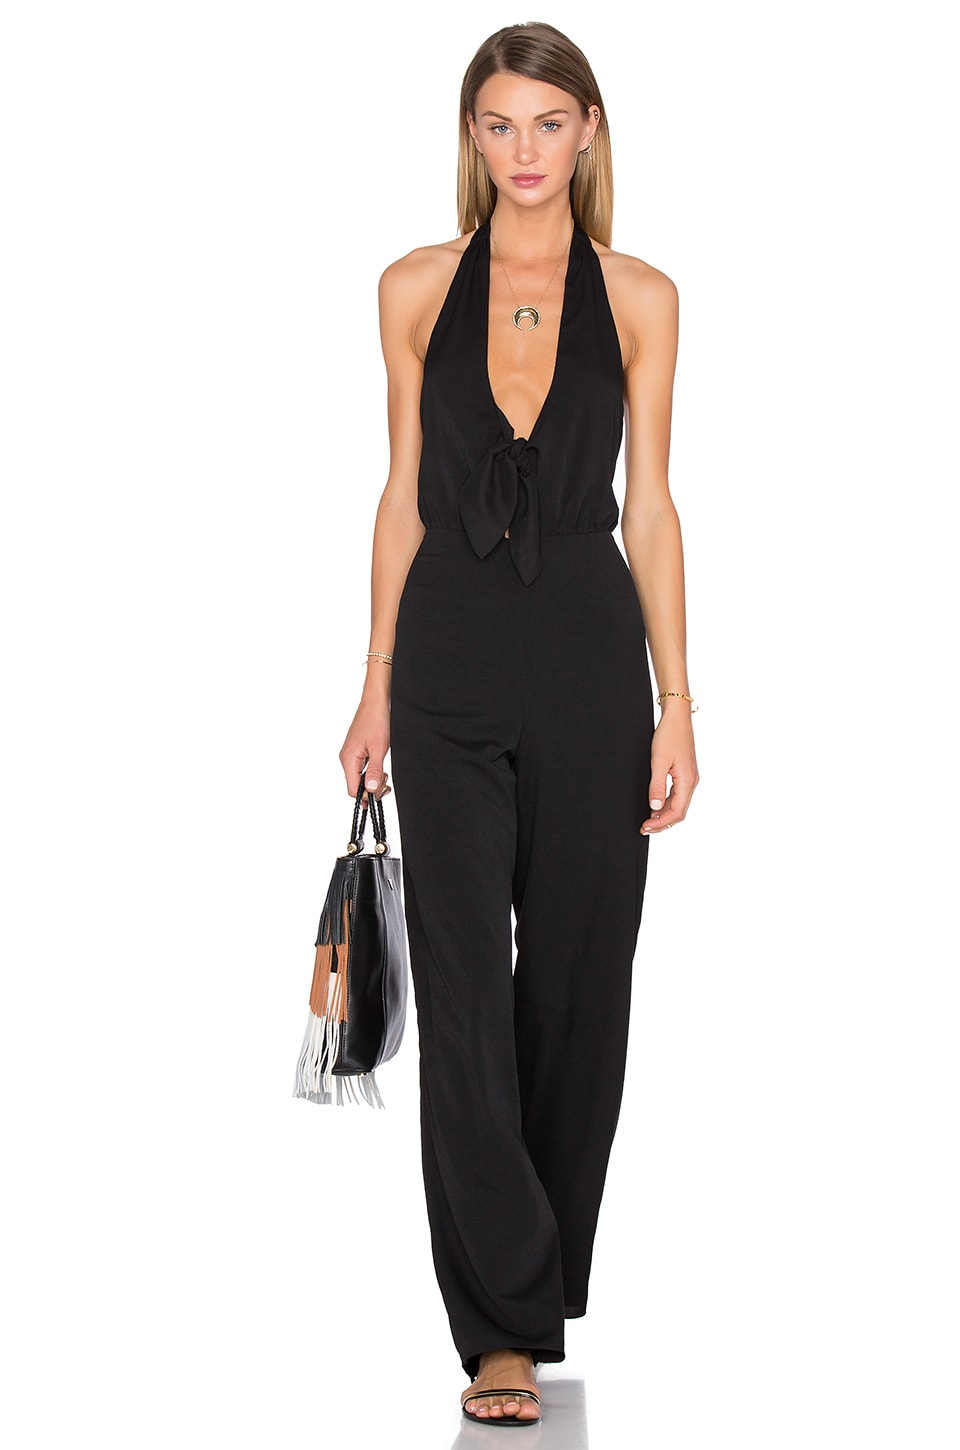 x REVOLVE Coco Tie Front Jumpsuit by House of Harlow 1960